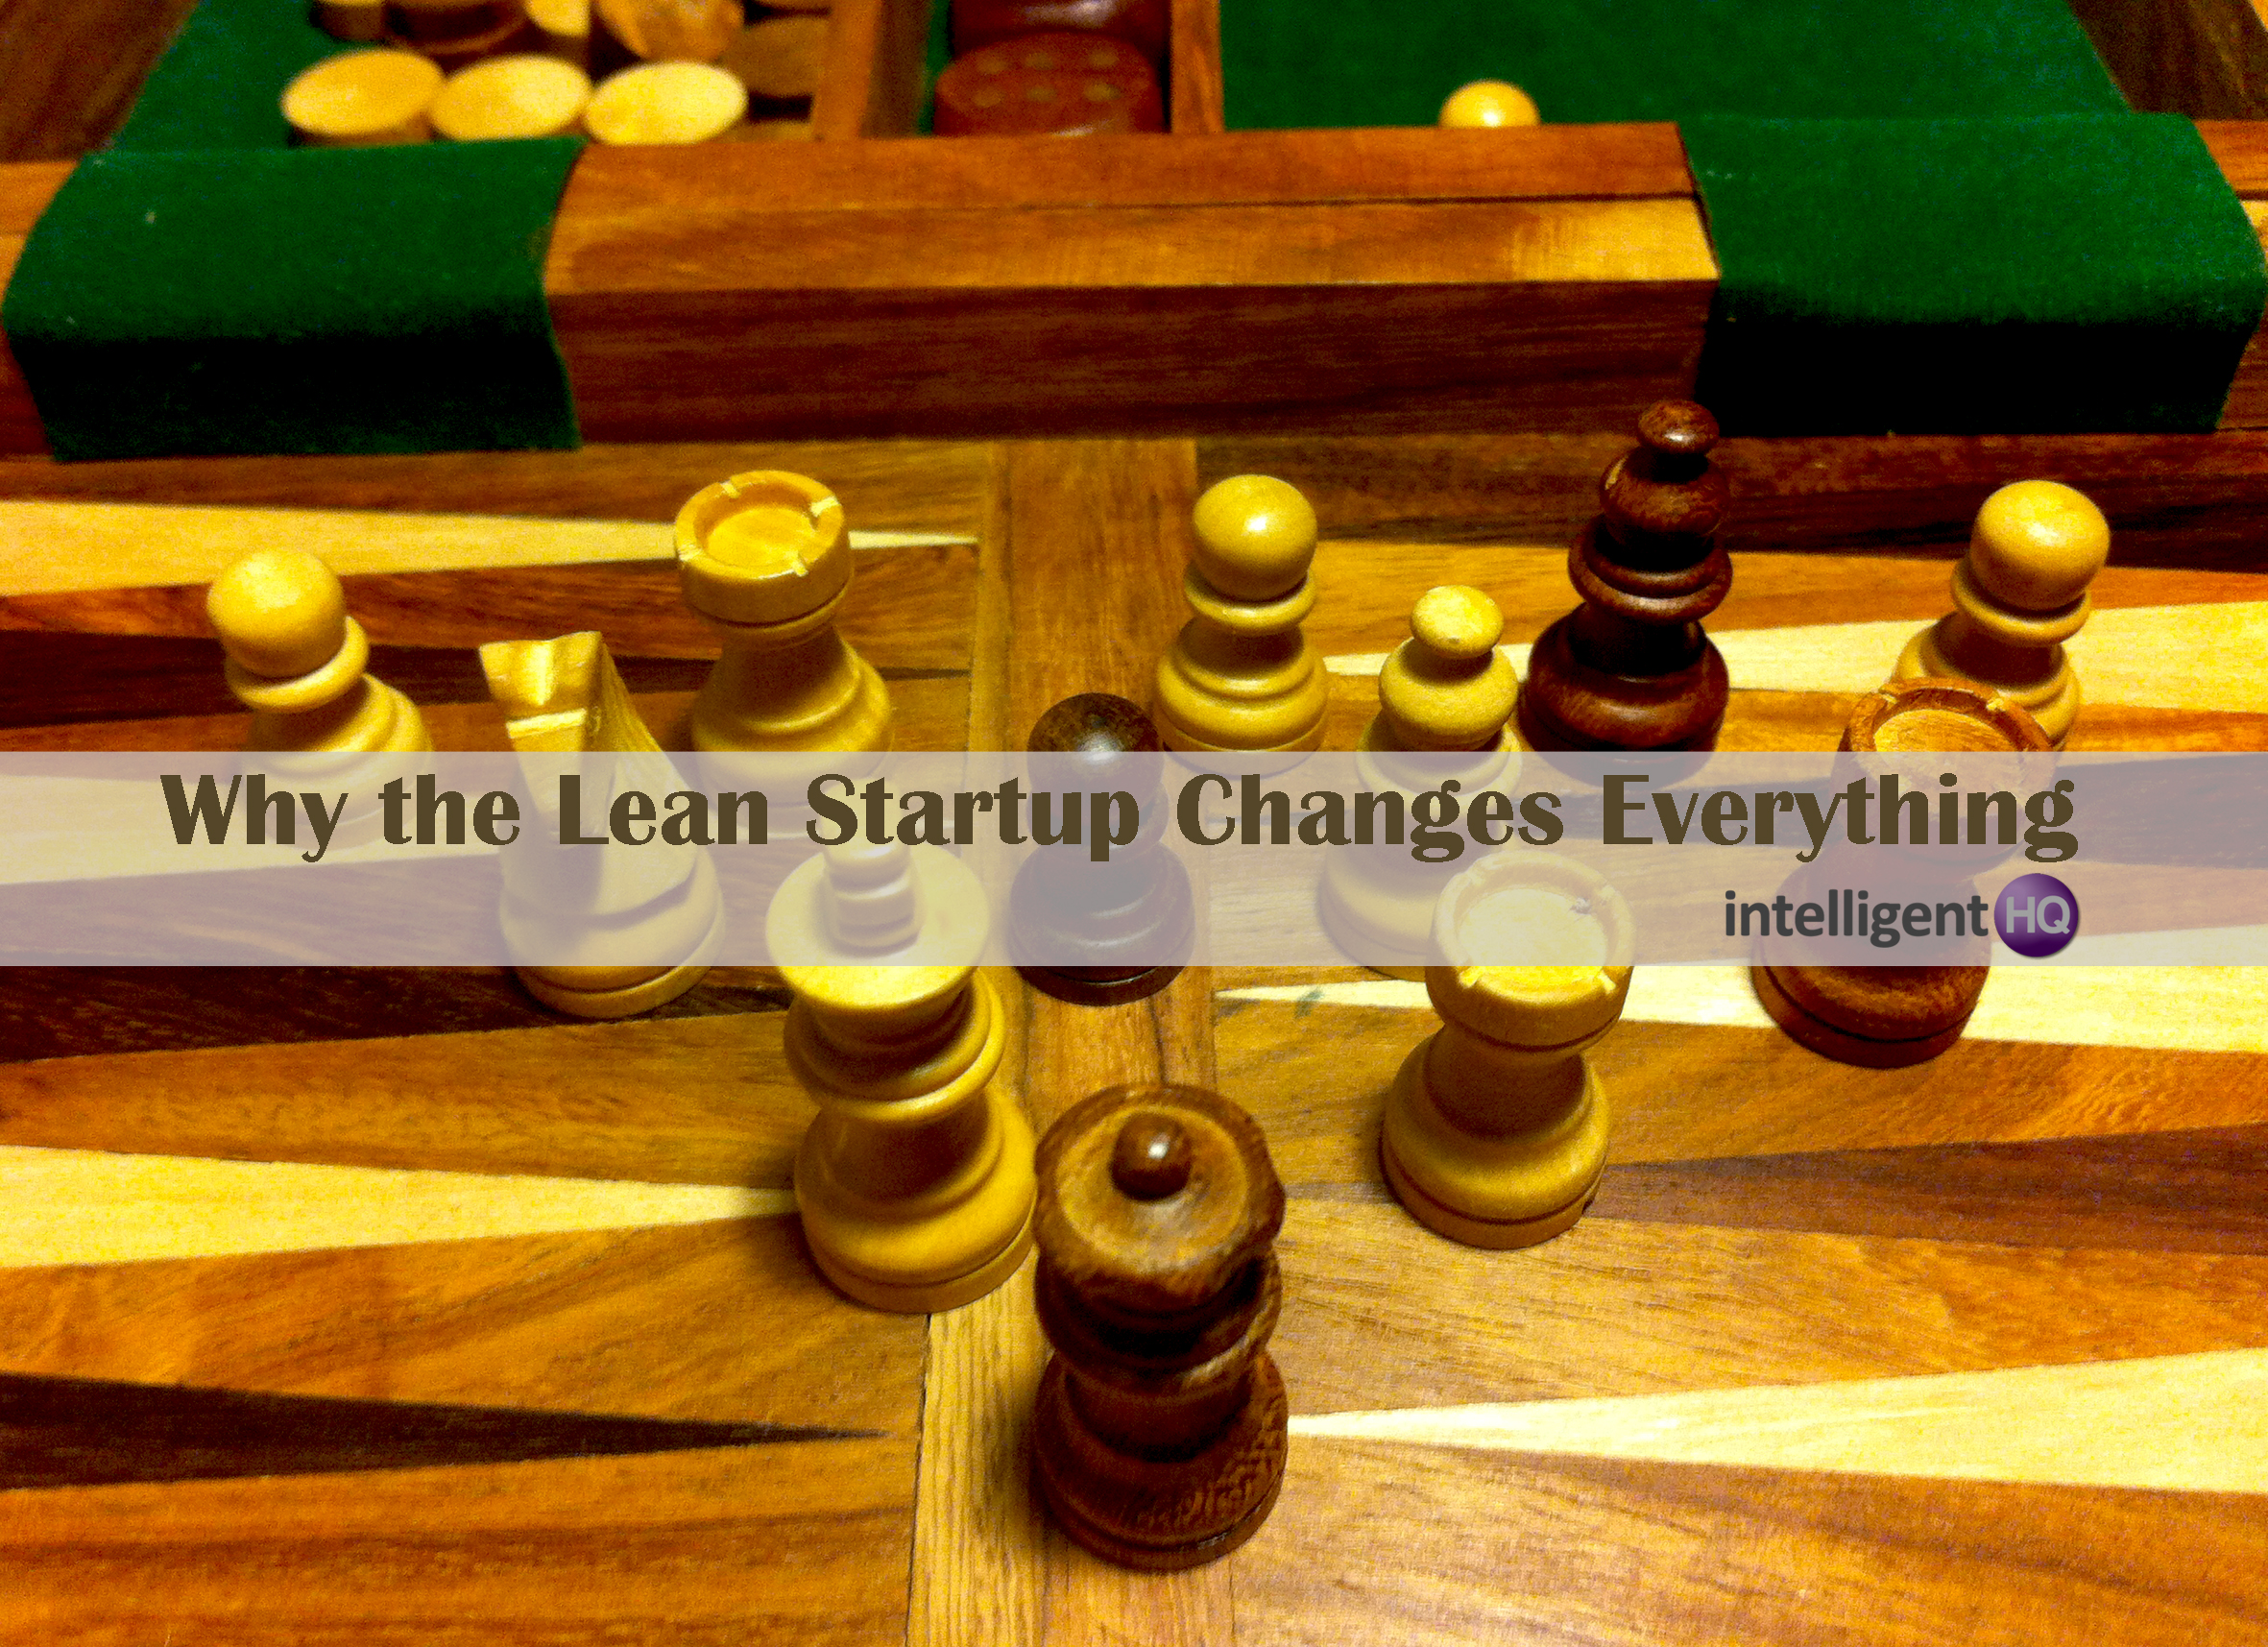 hbrs 10 must reads on entrepreneurship and startups featuring bonus article why the lean startup changes everything by steve blank